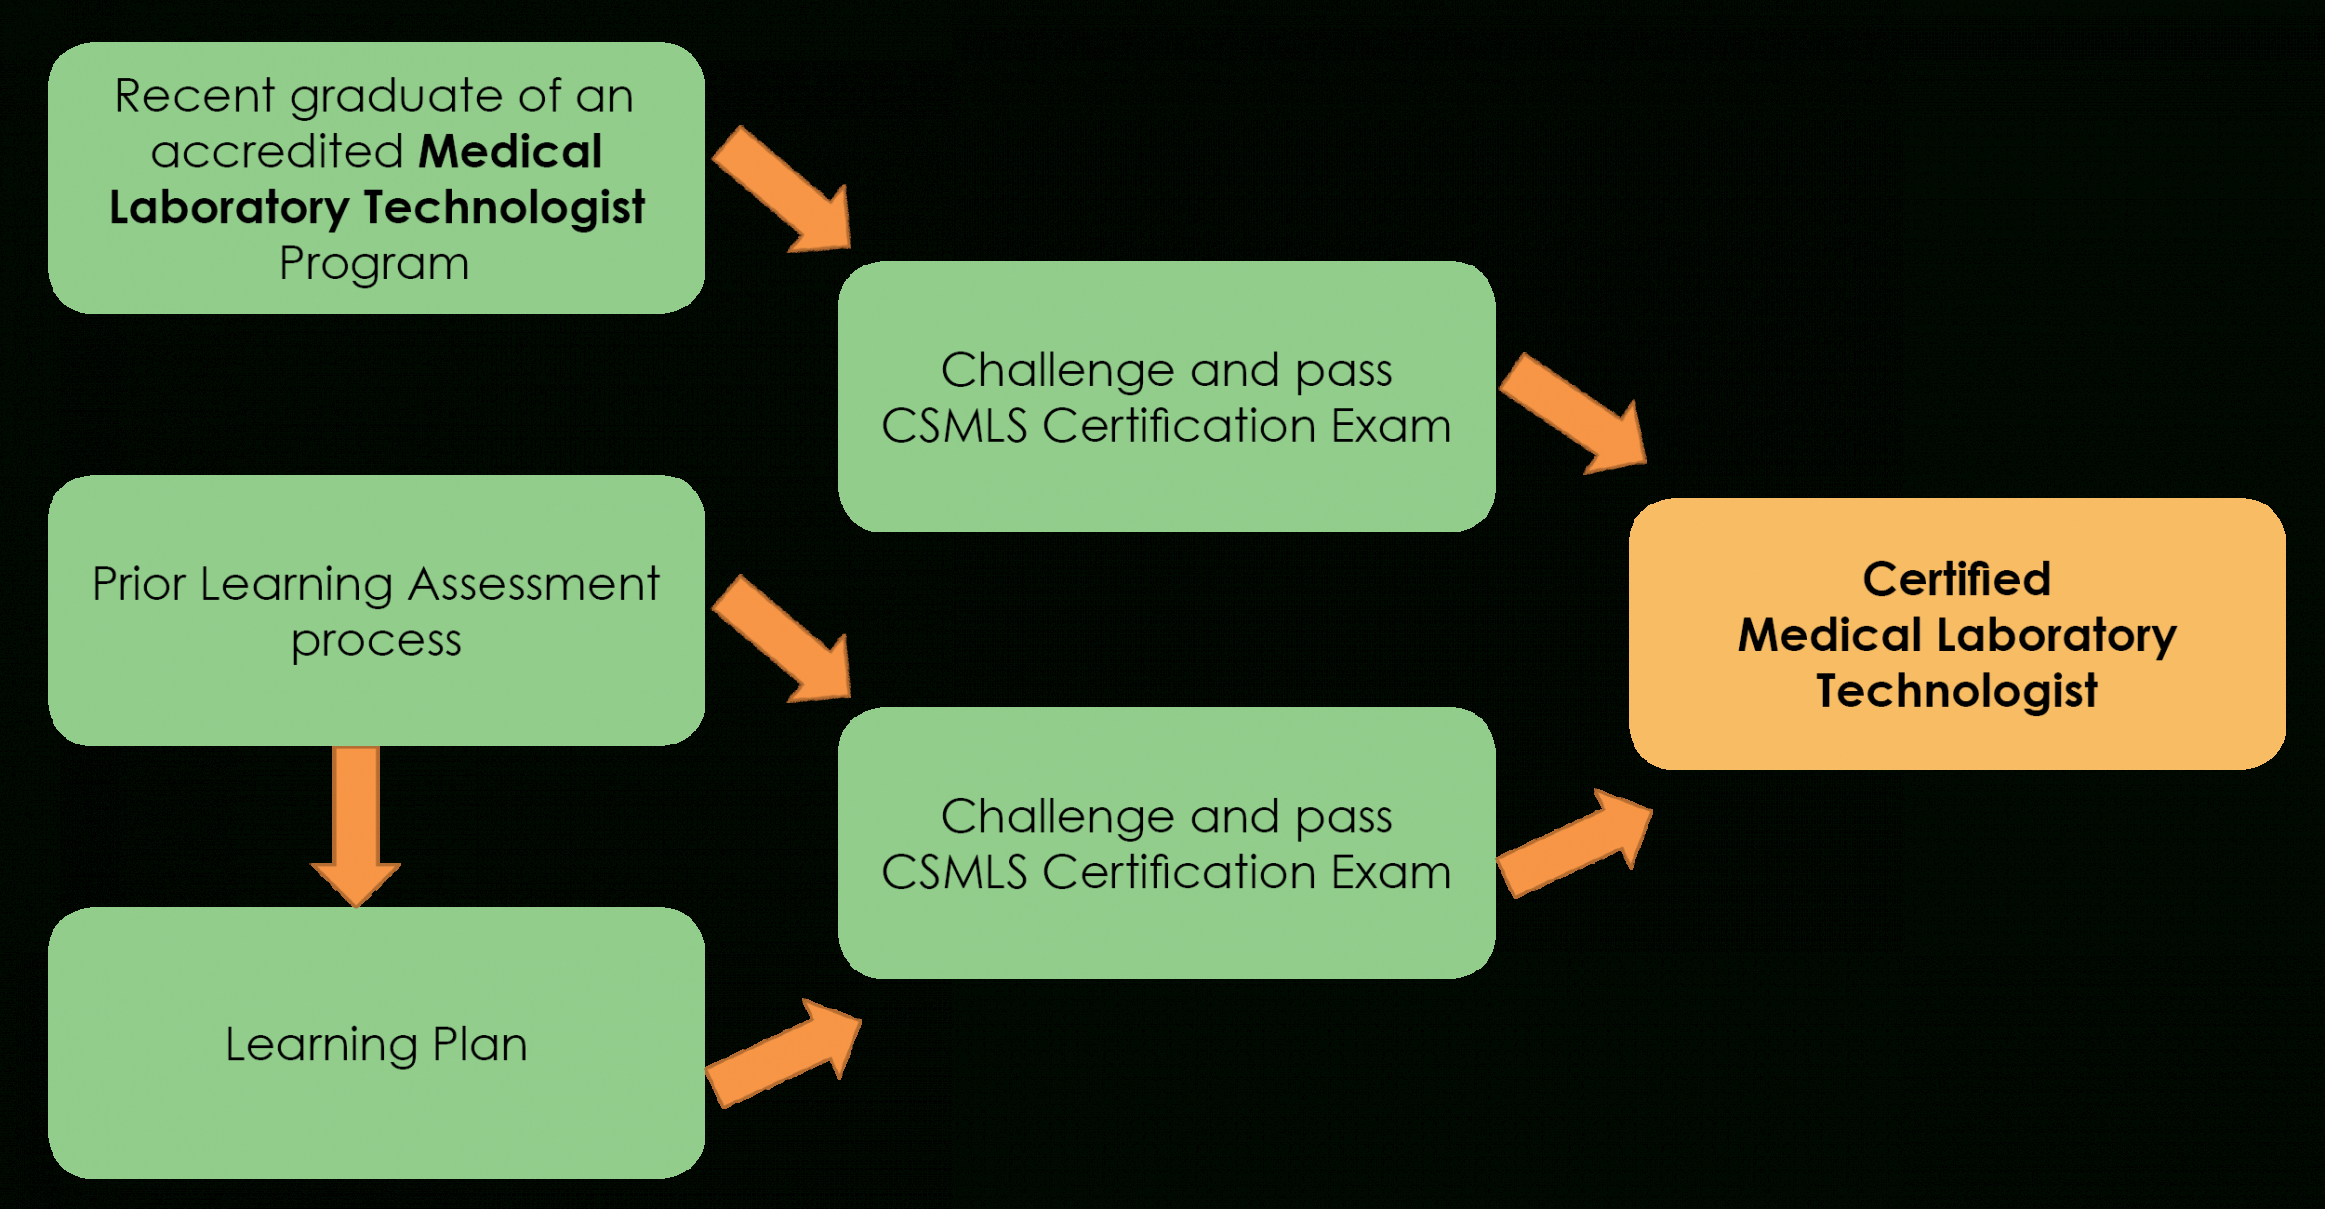 how to make a certificate in medical laboratory science